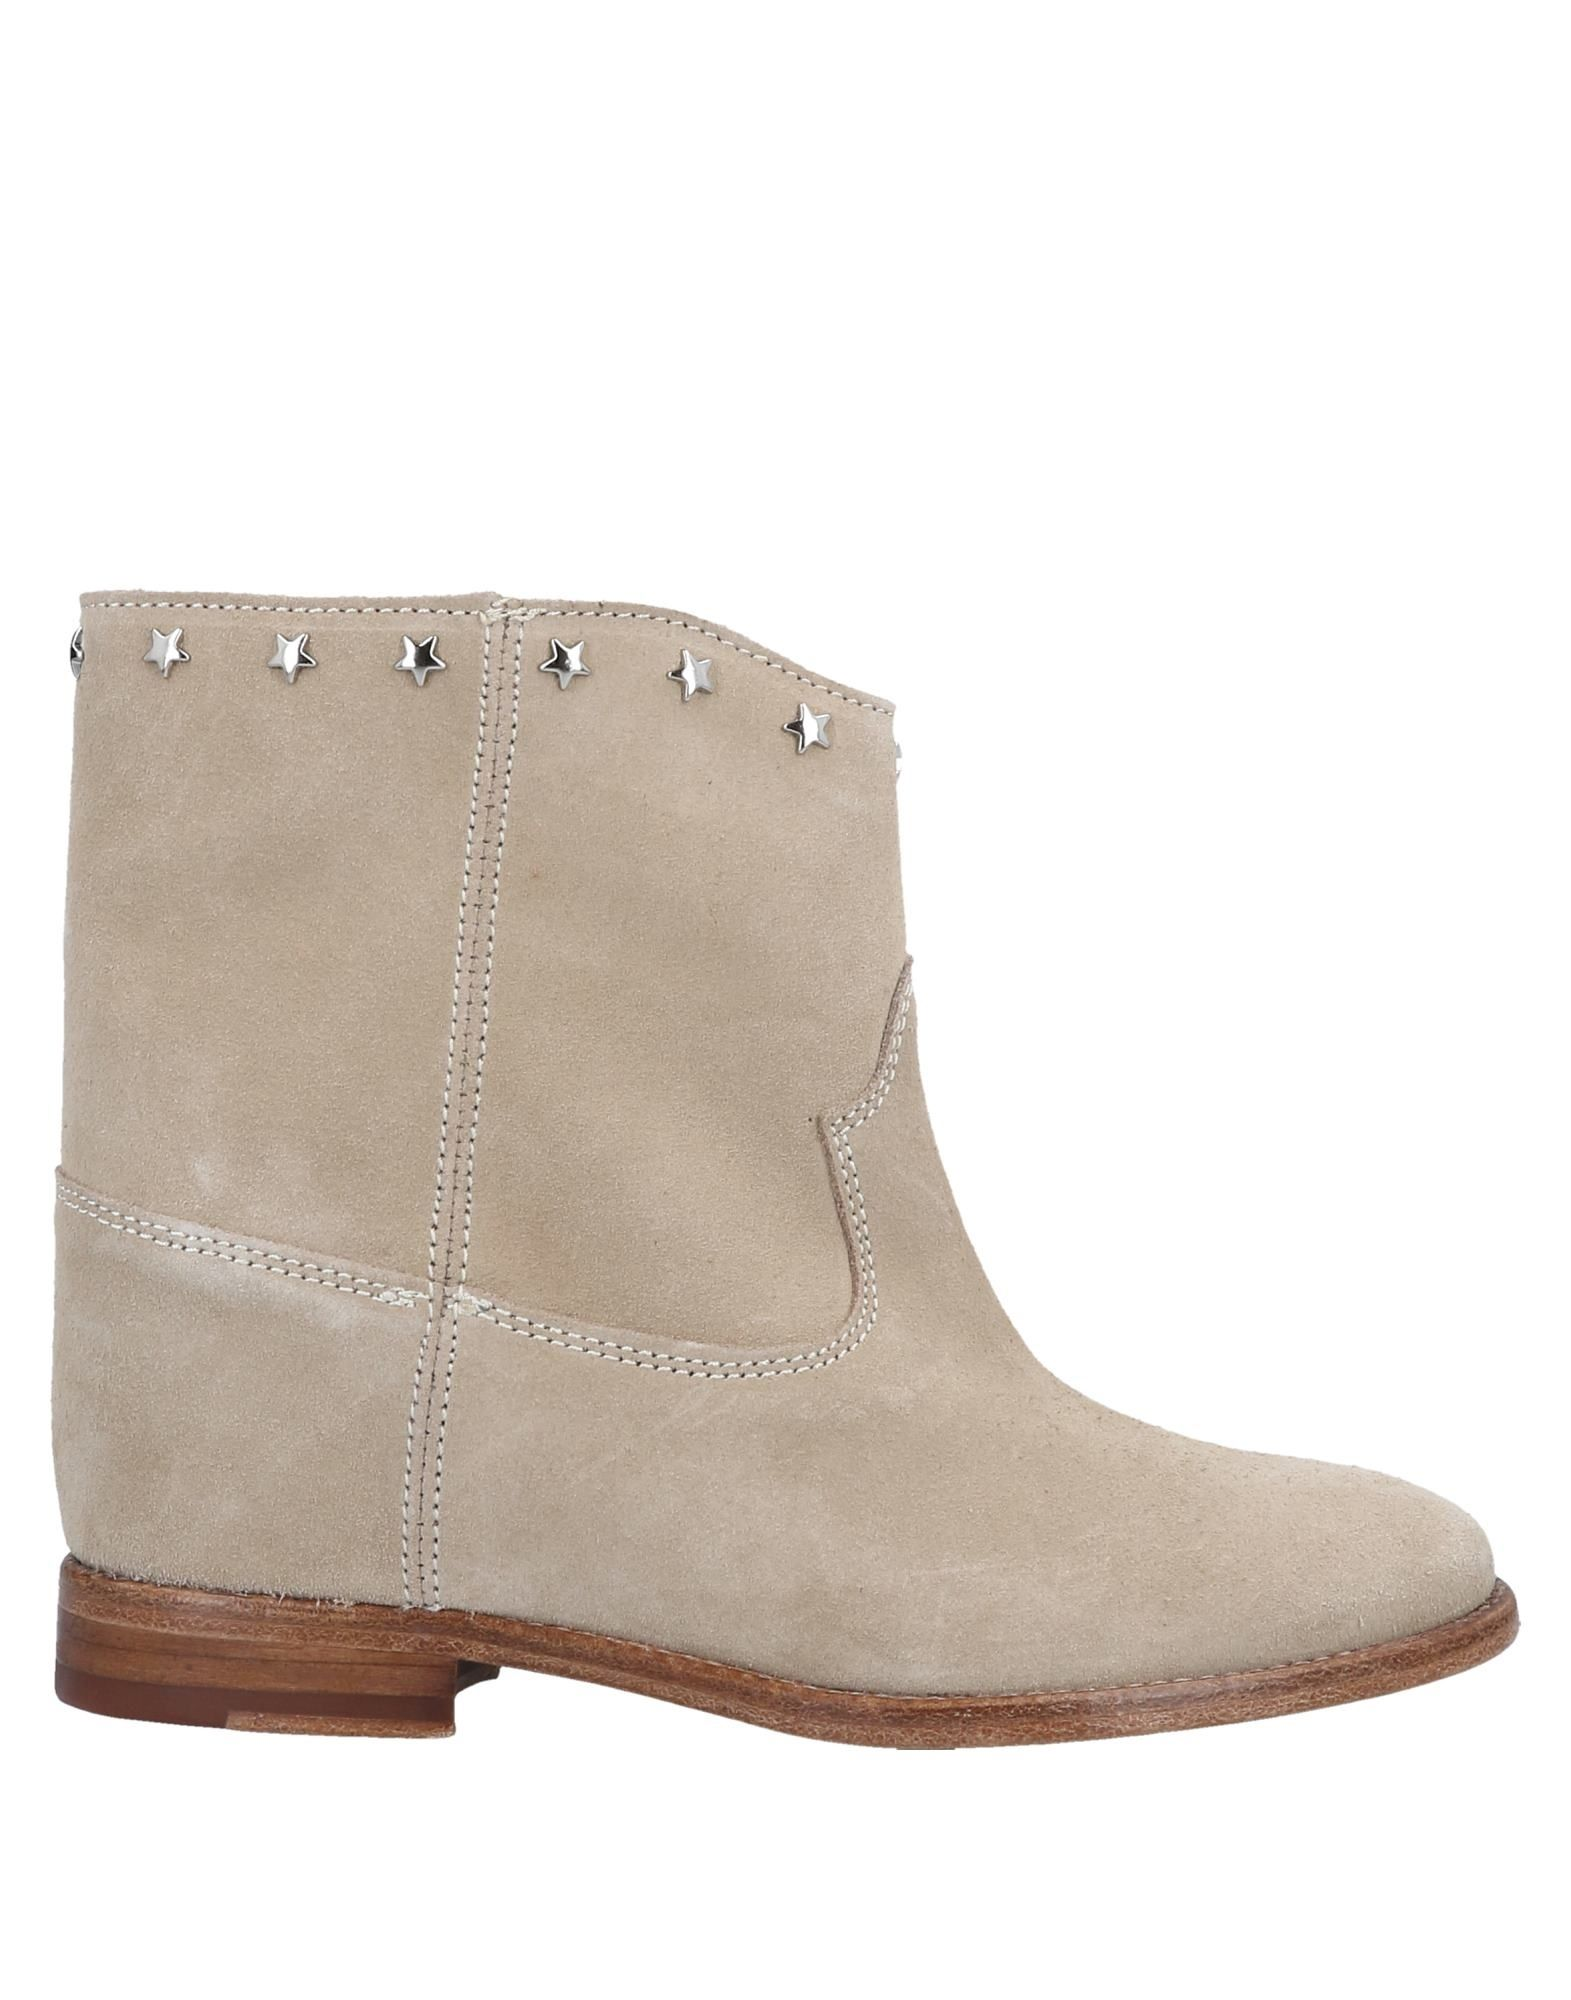 Bottine Mode Catarina Martins Femme - Bottines Catarina Martins Gris Mode Bottine pas cher et belle ca5727